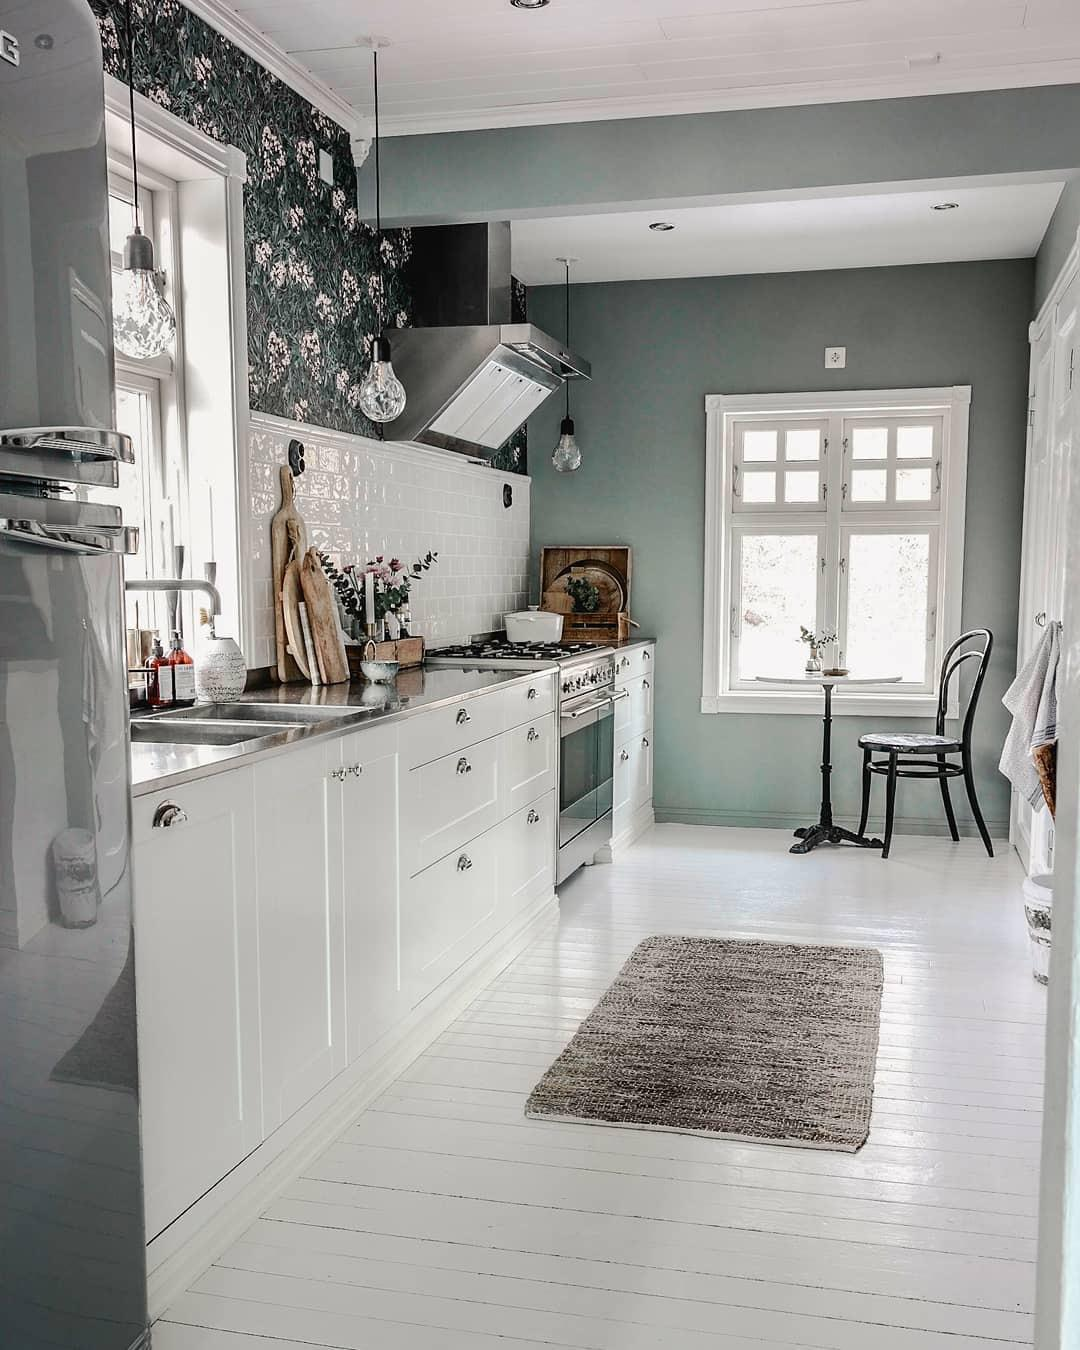 Inspiring Kitchen Design Ideas For Your Home - Page 26 of 35 - Liatsy Fashion